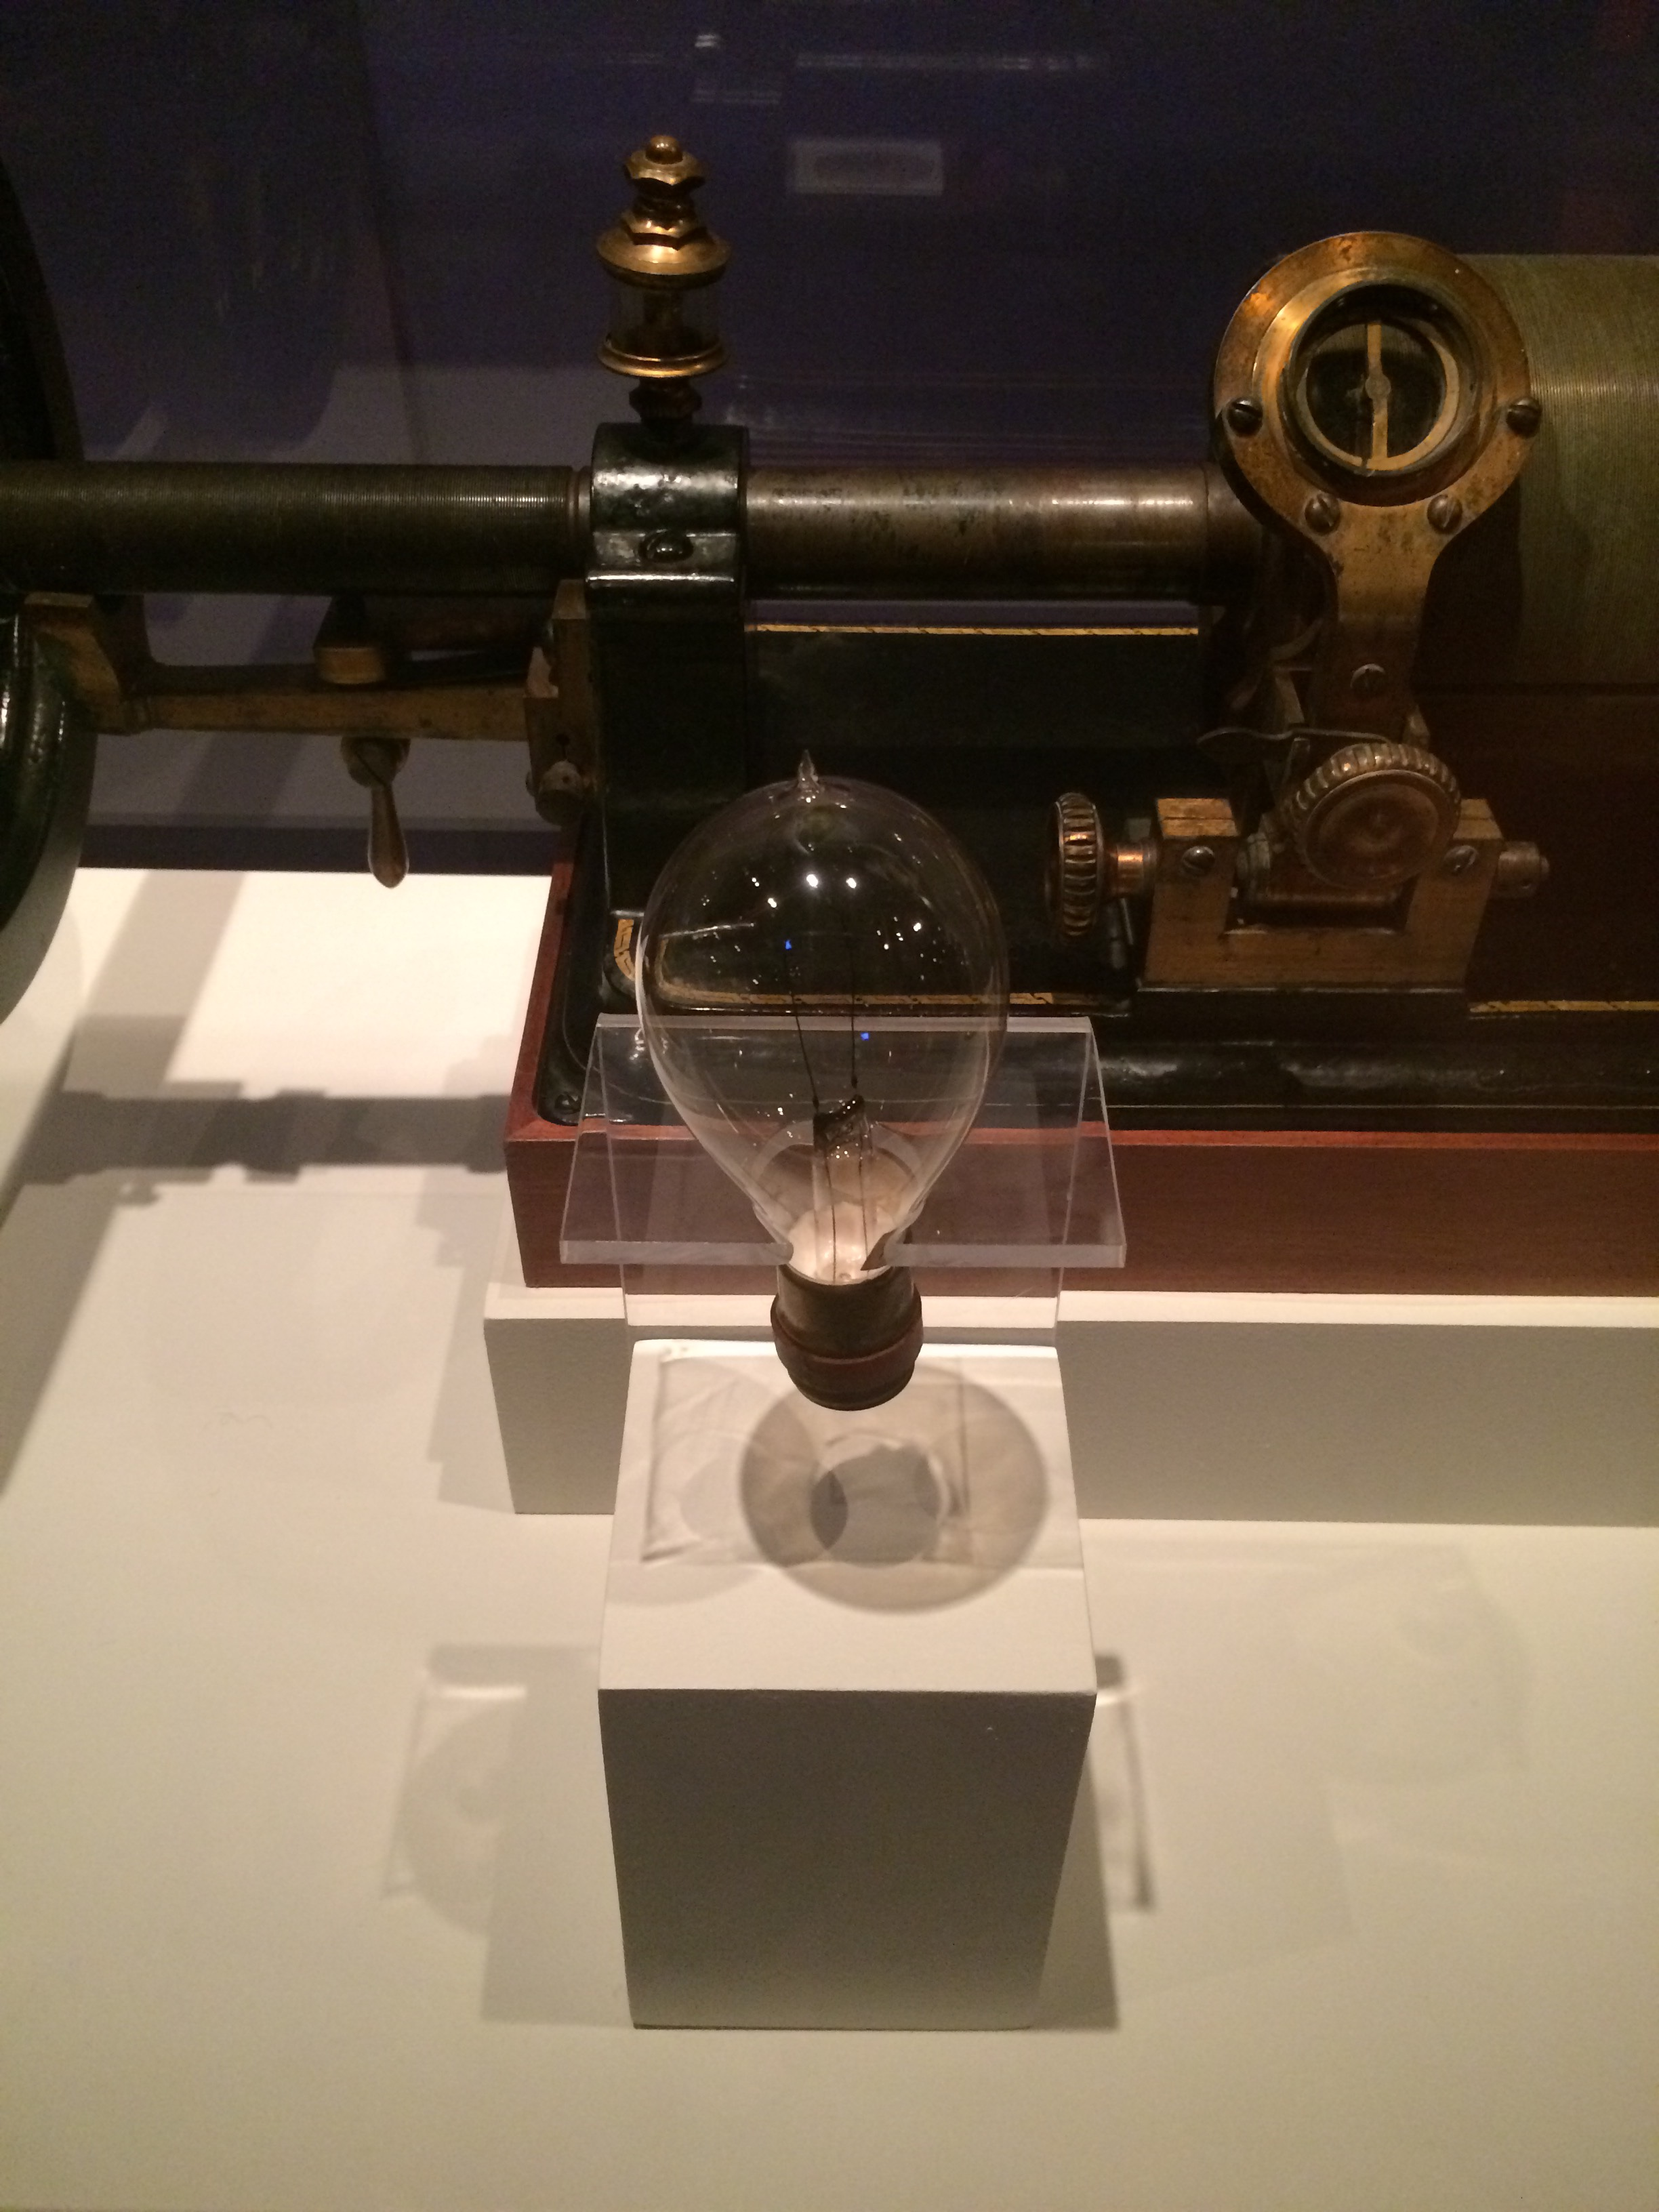 In DC's Museum of American History, one of Edison's light bulbs from the 1870s.